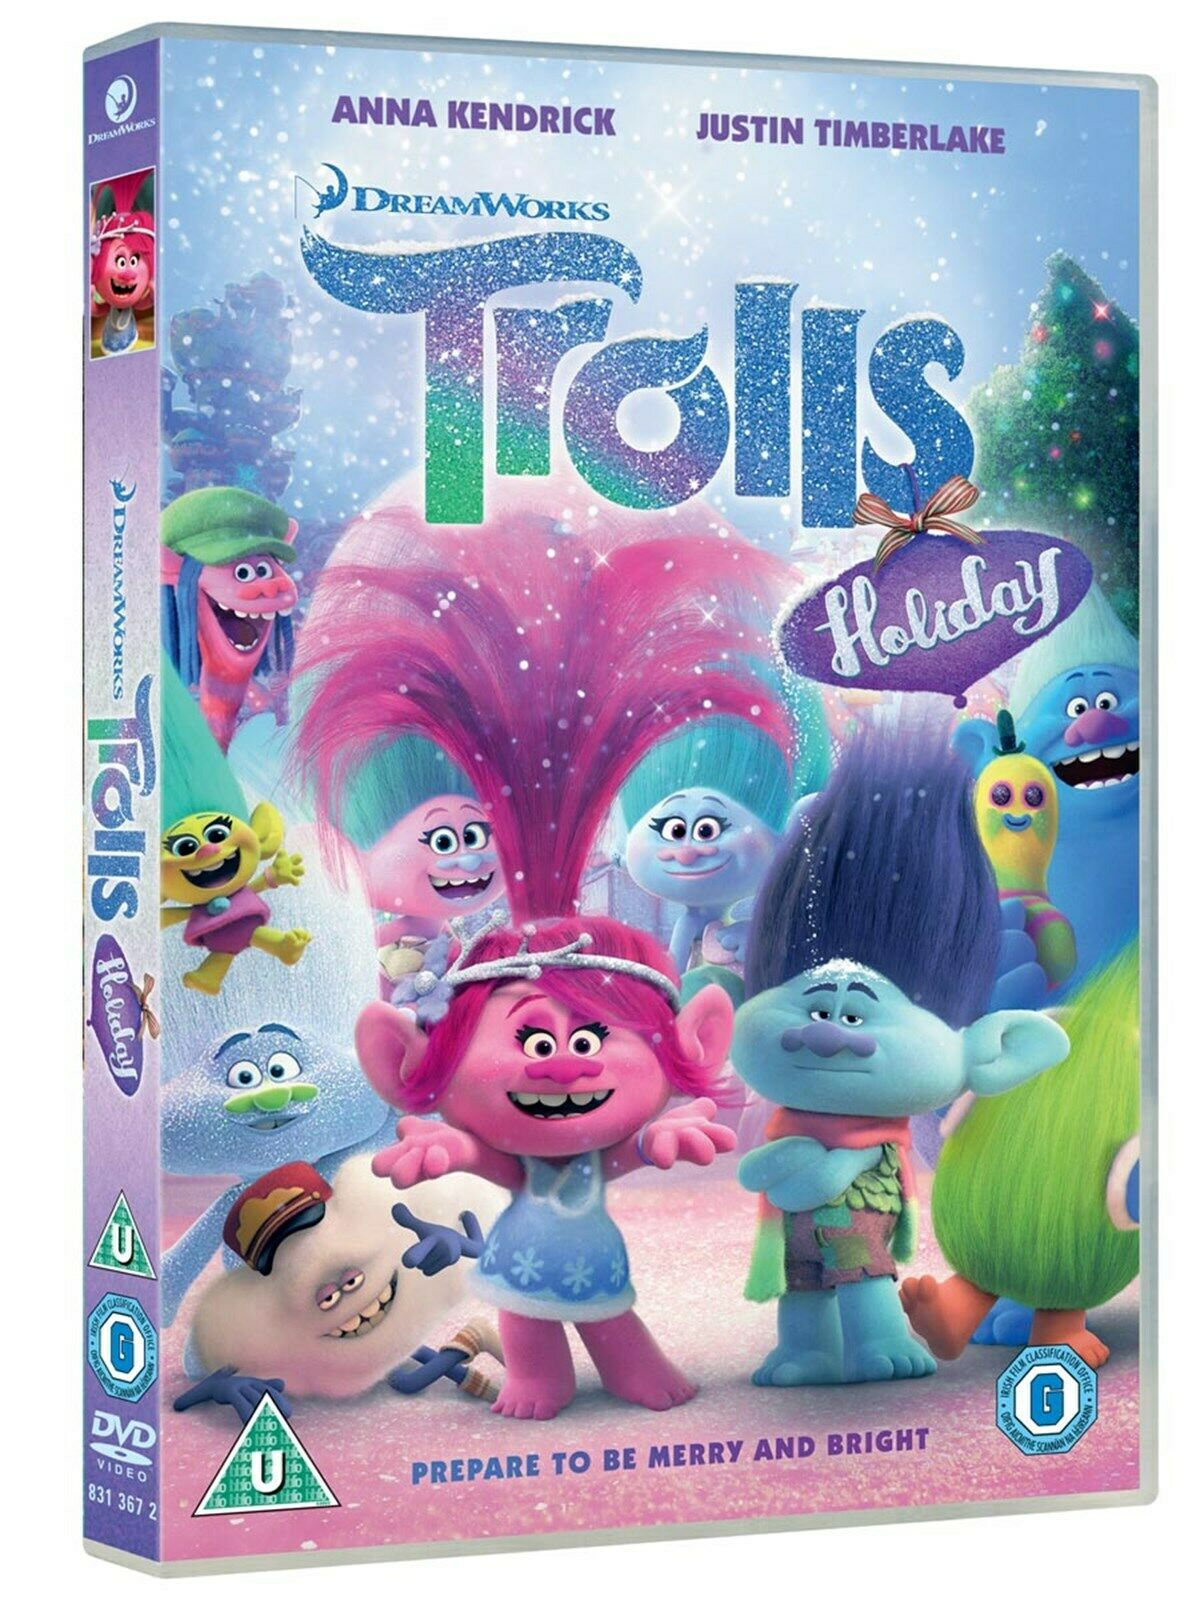 Trolls Holiday On Nbc >> Trolls Holiday (Includes Free Poster) [DVD] • £5.00 - PicClick UK